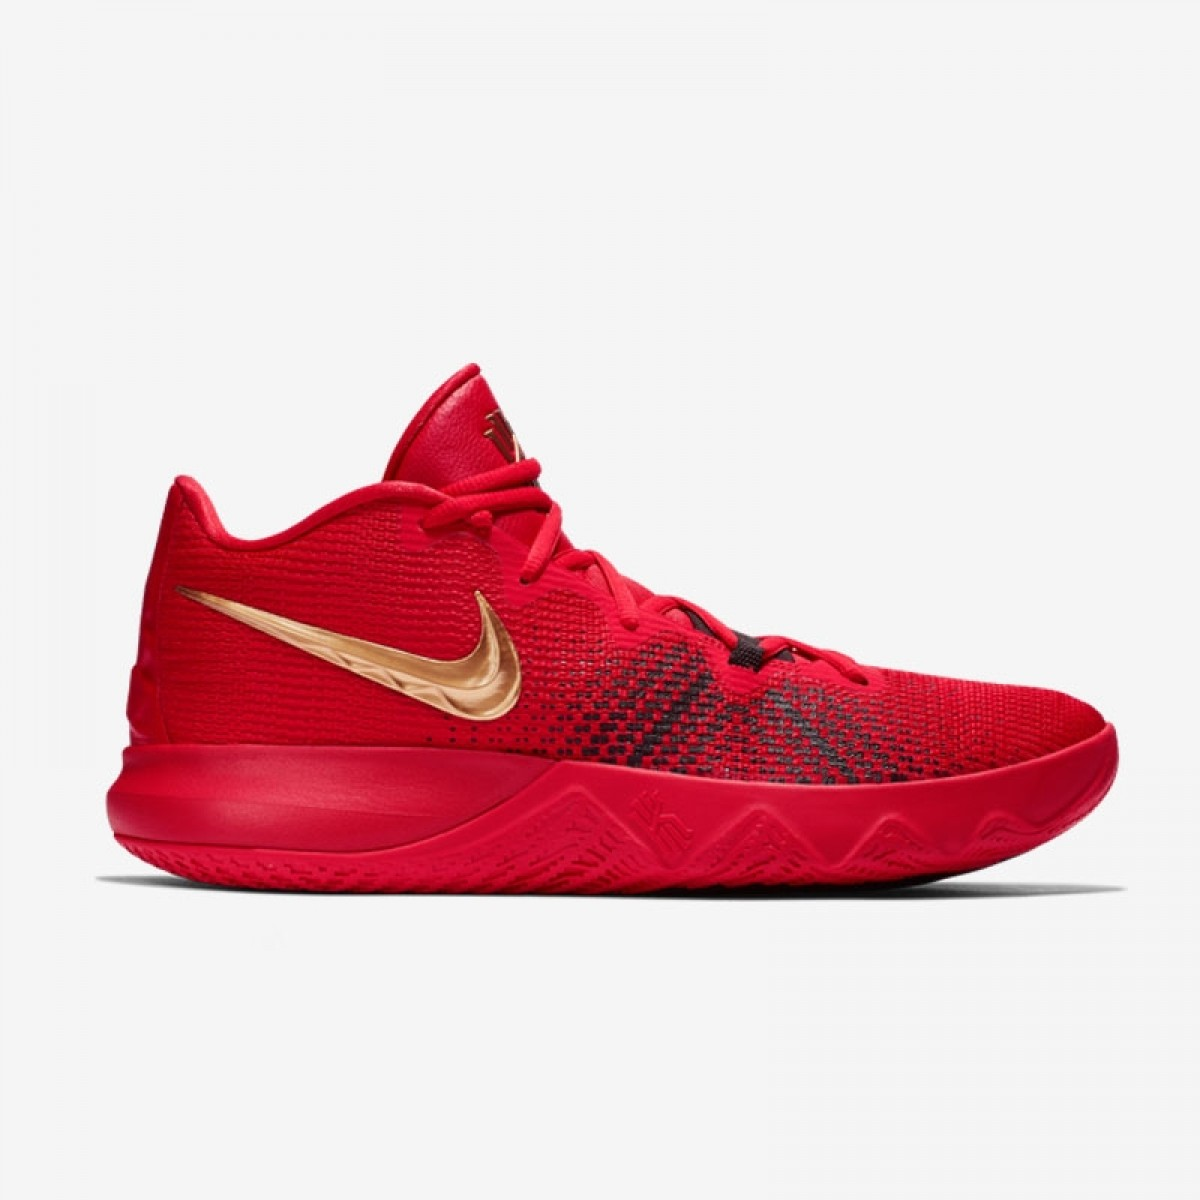 Nike Kyrie Flytrap GS 'Red October'